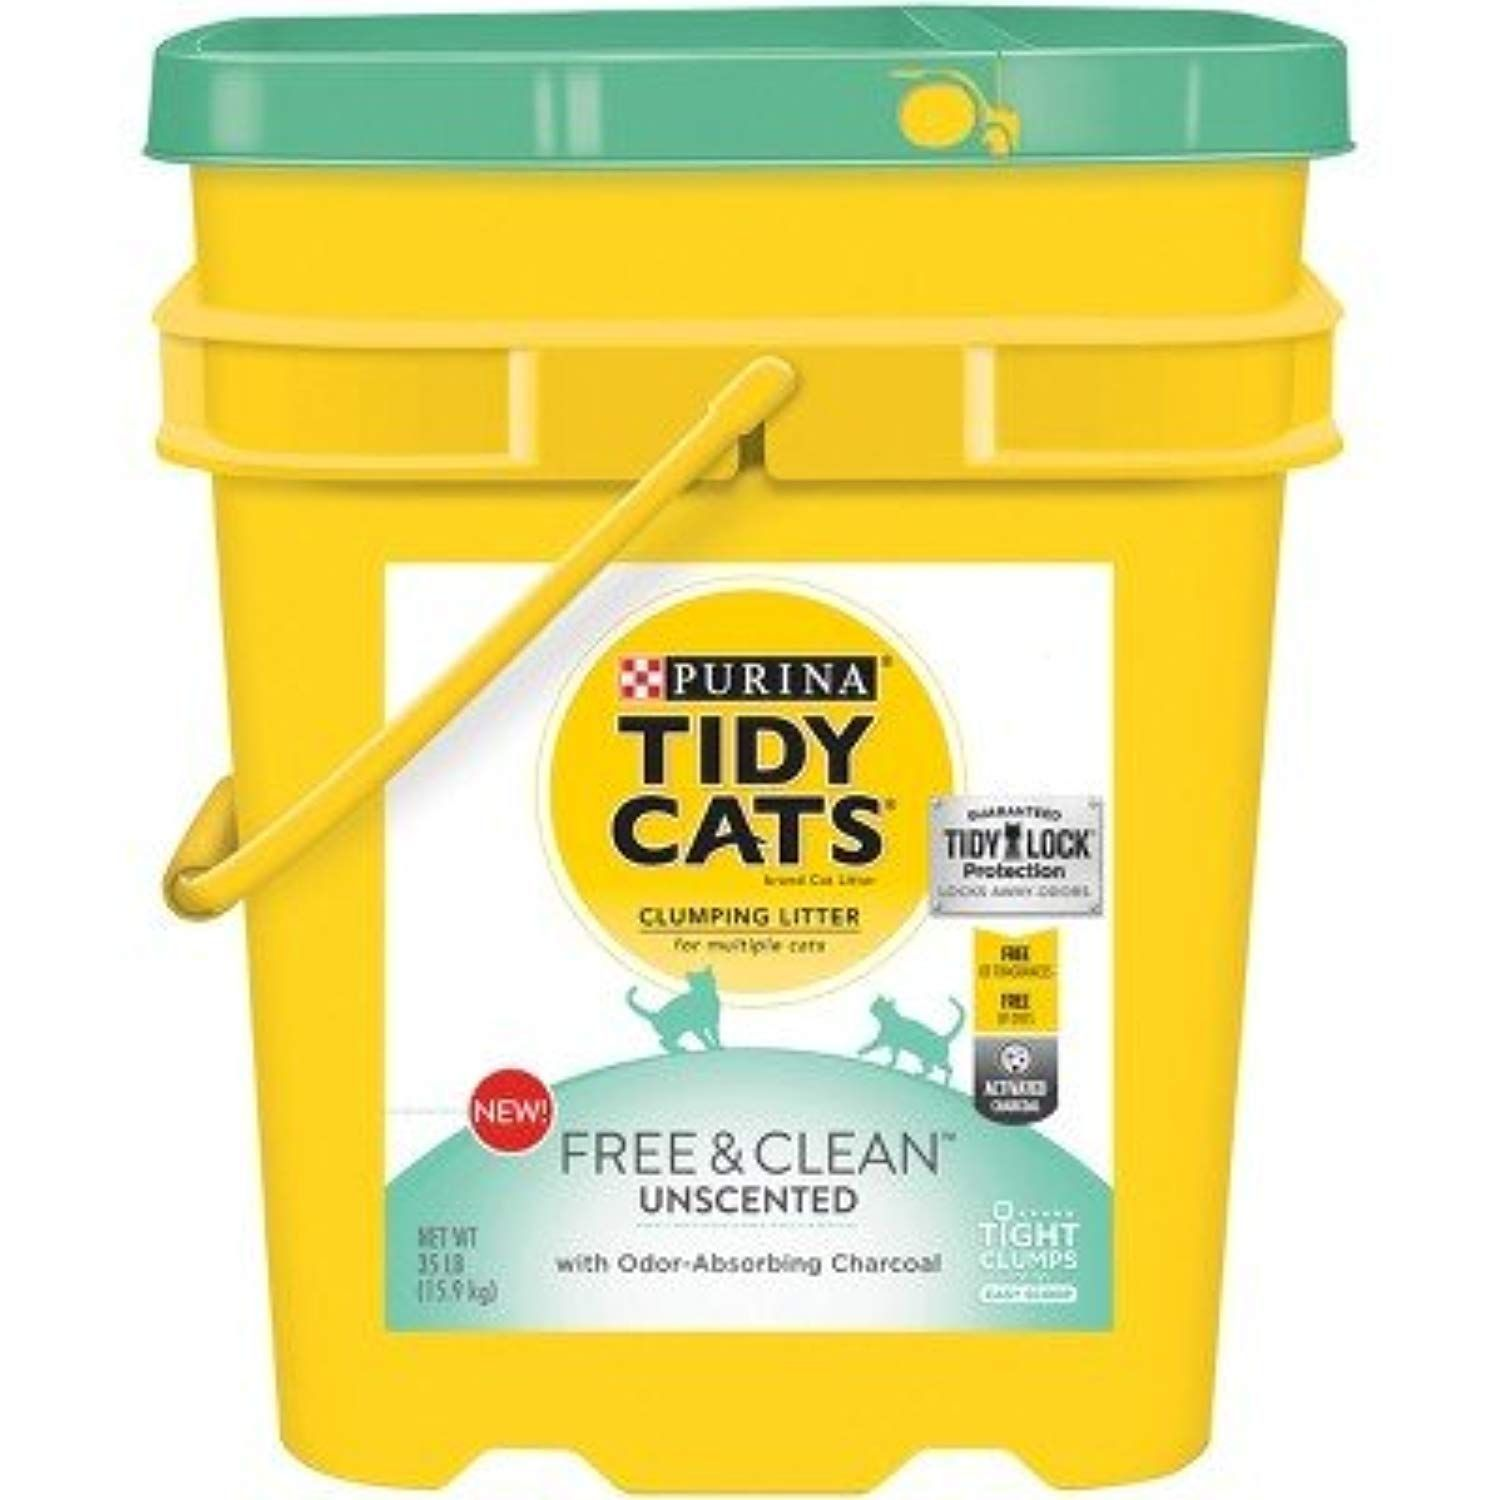 Tidy Cats Free and Clean Unscented Cat Litter 35lb